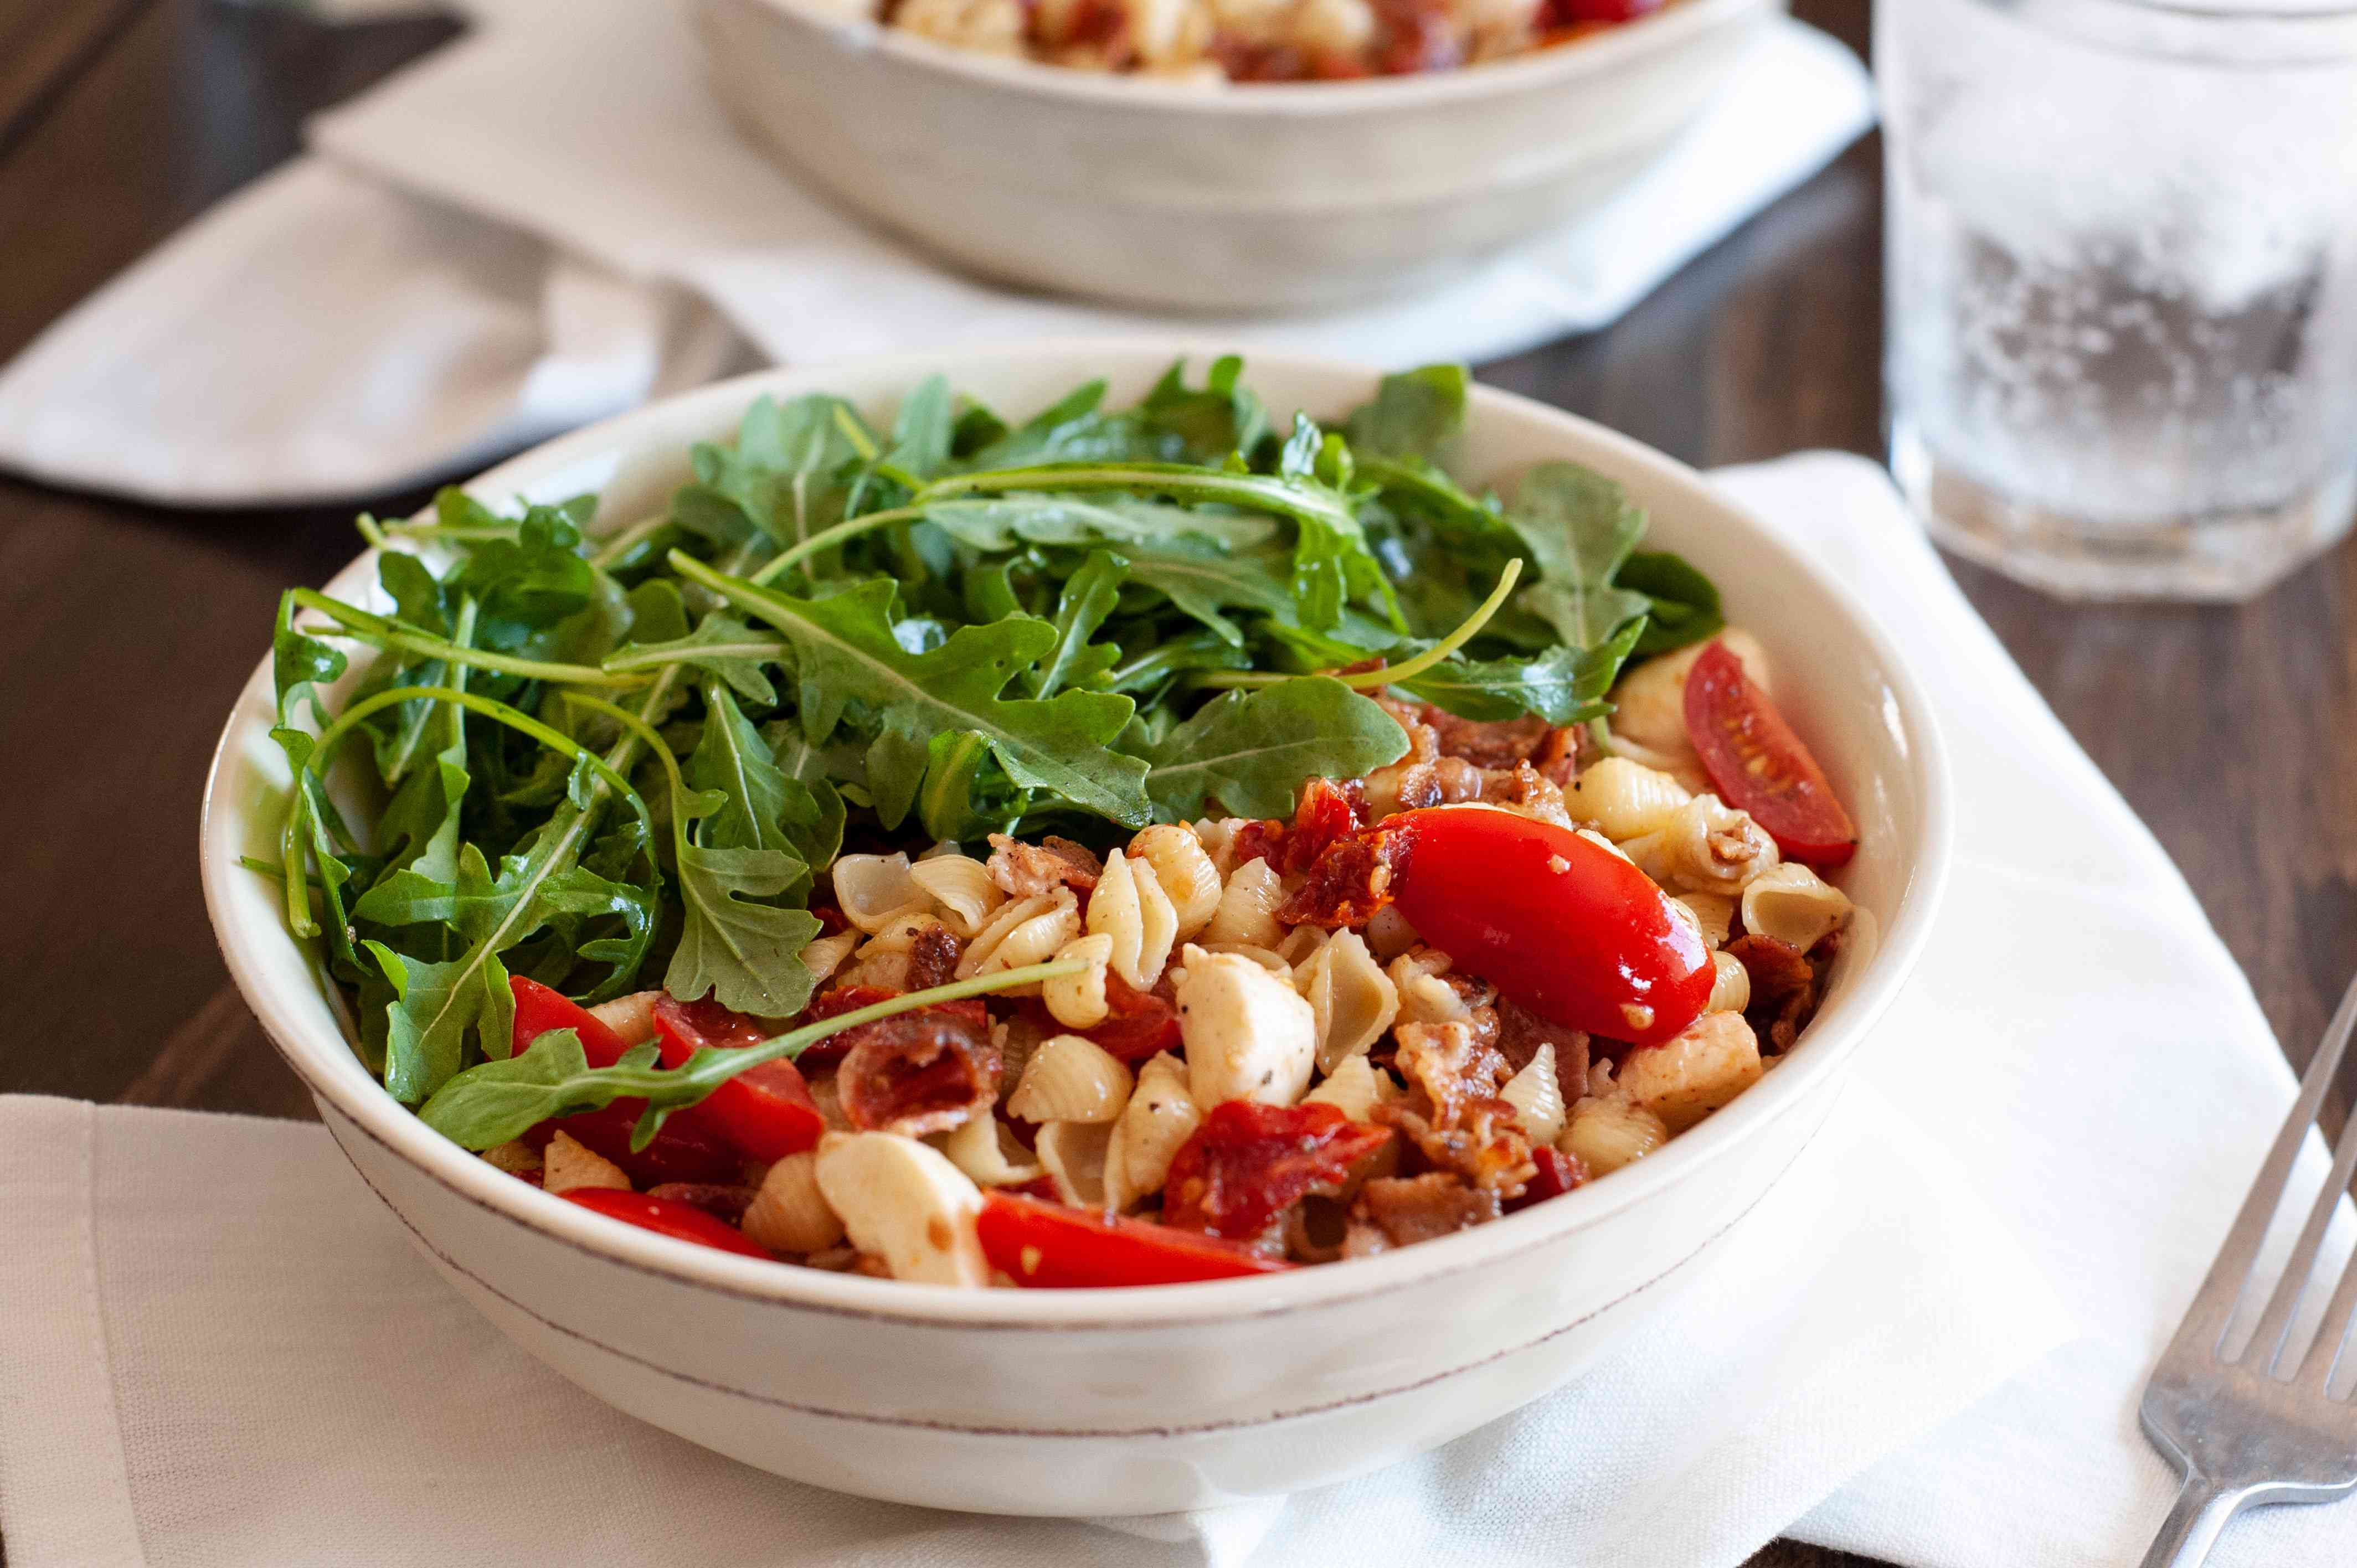 Summery blt pasta on a table with white linens, utensils and ice water.